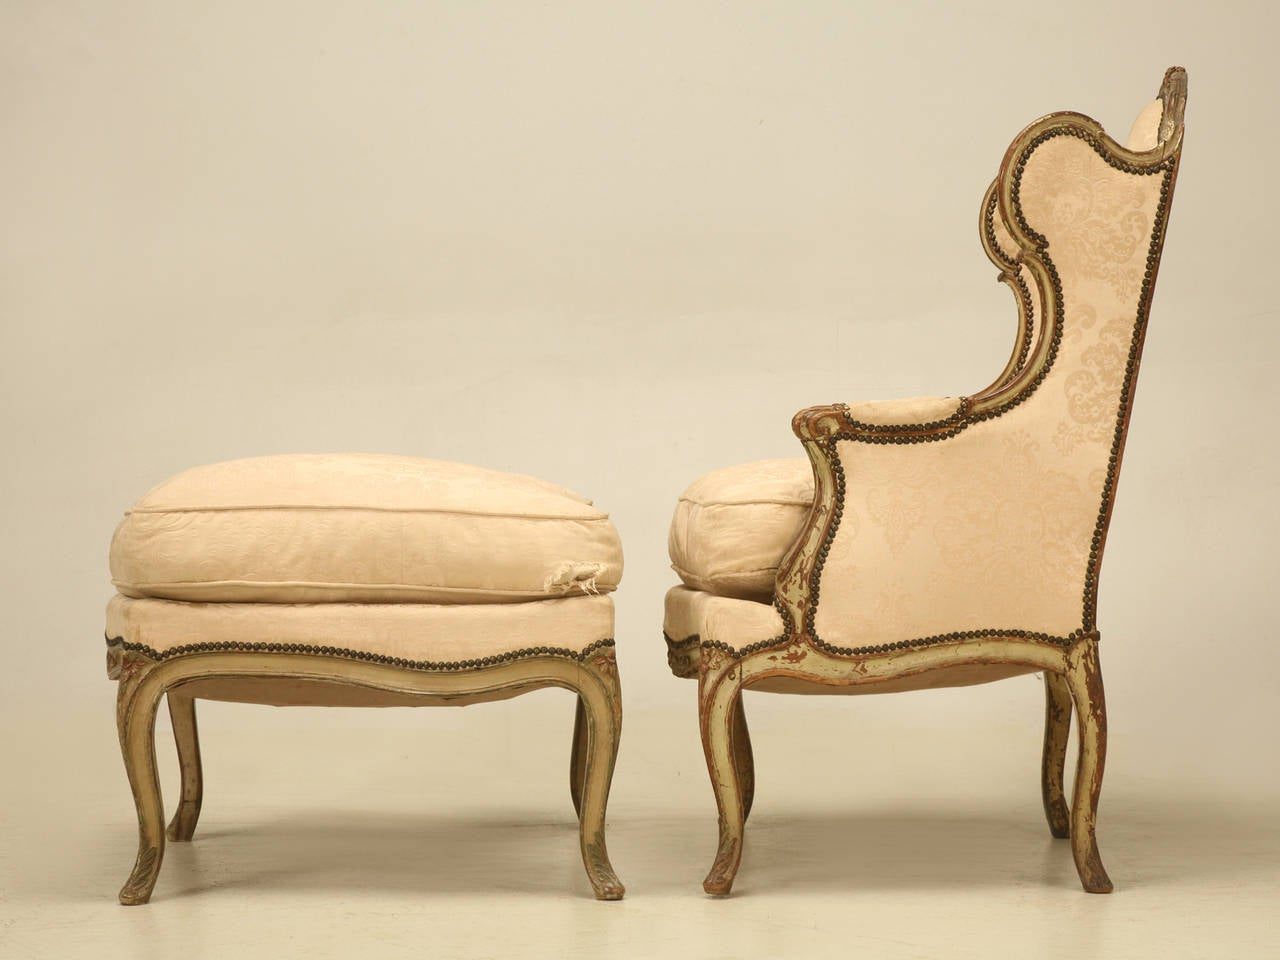 leather bergere chair and ottoman lowes outdoor lounge chairs louis xv style french antique in